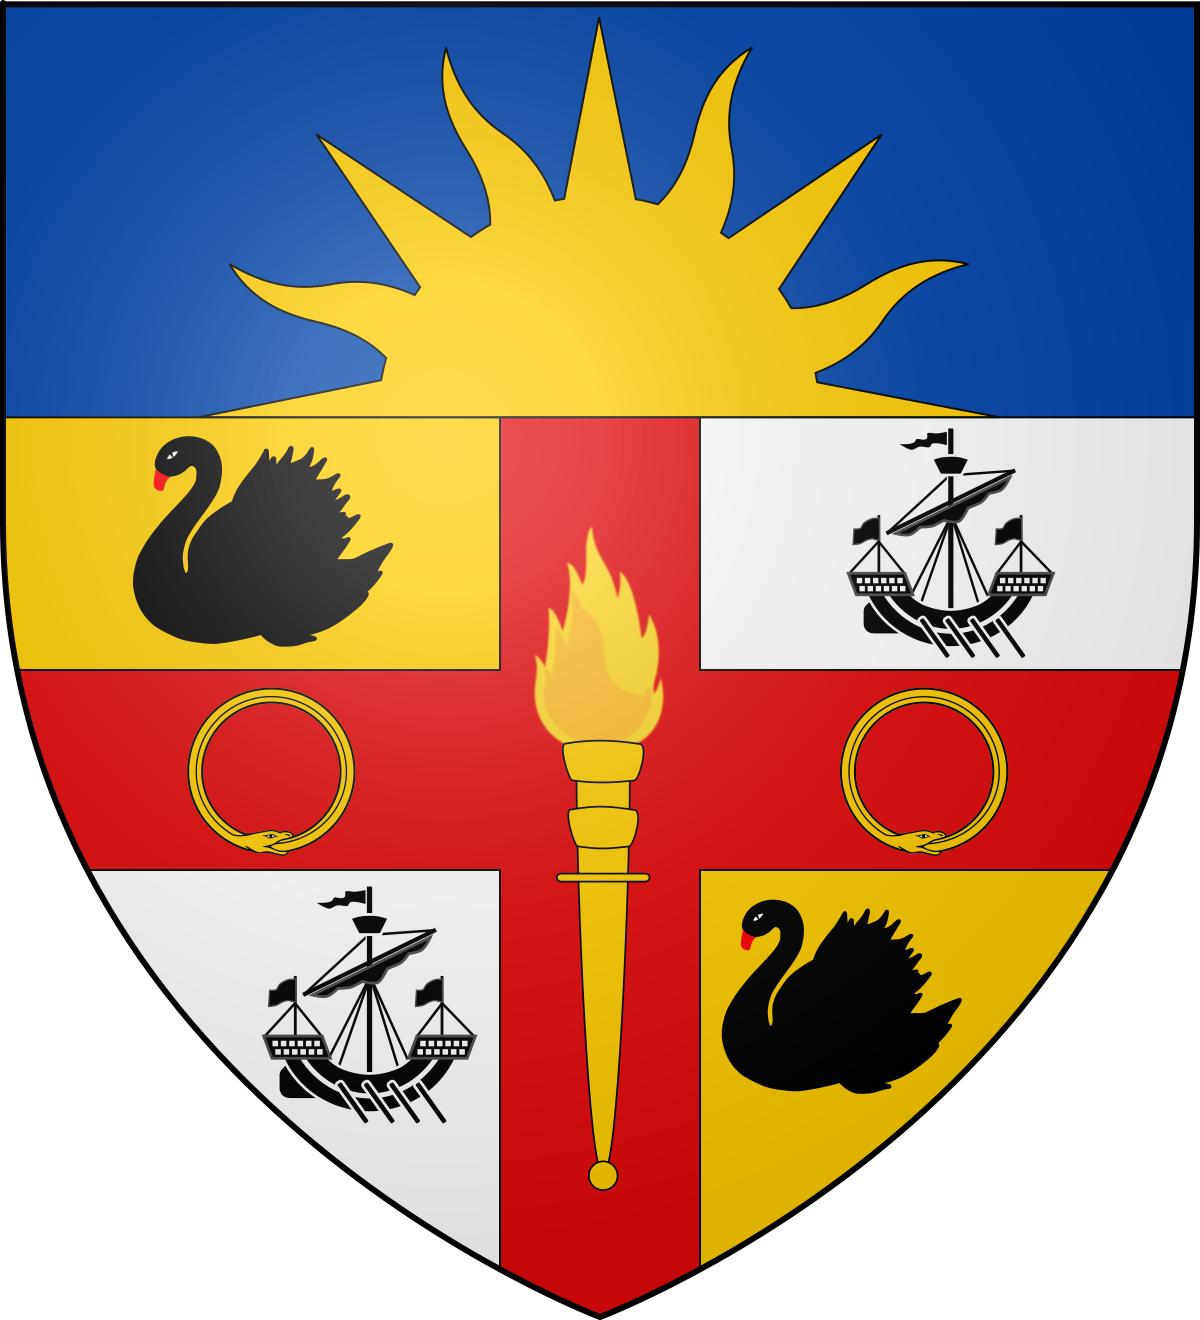 File:Royal Australasian College of Surgeons Arms.svg.